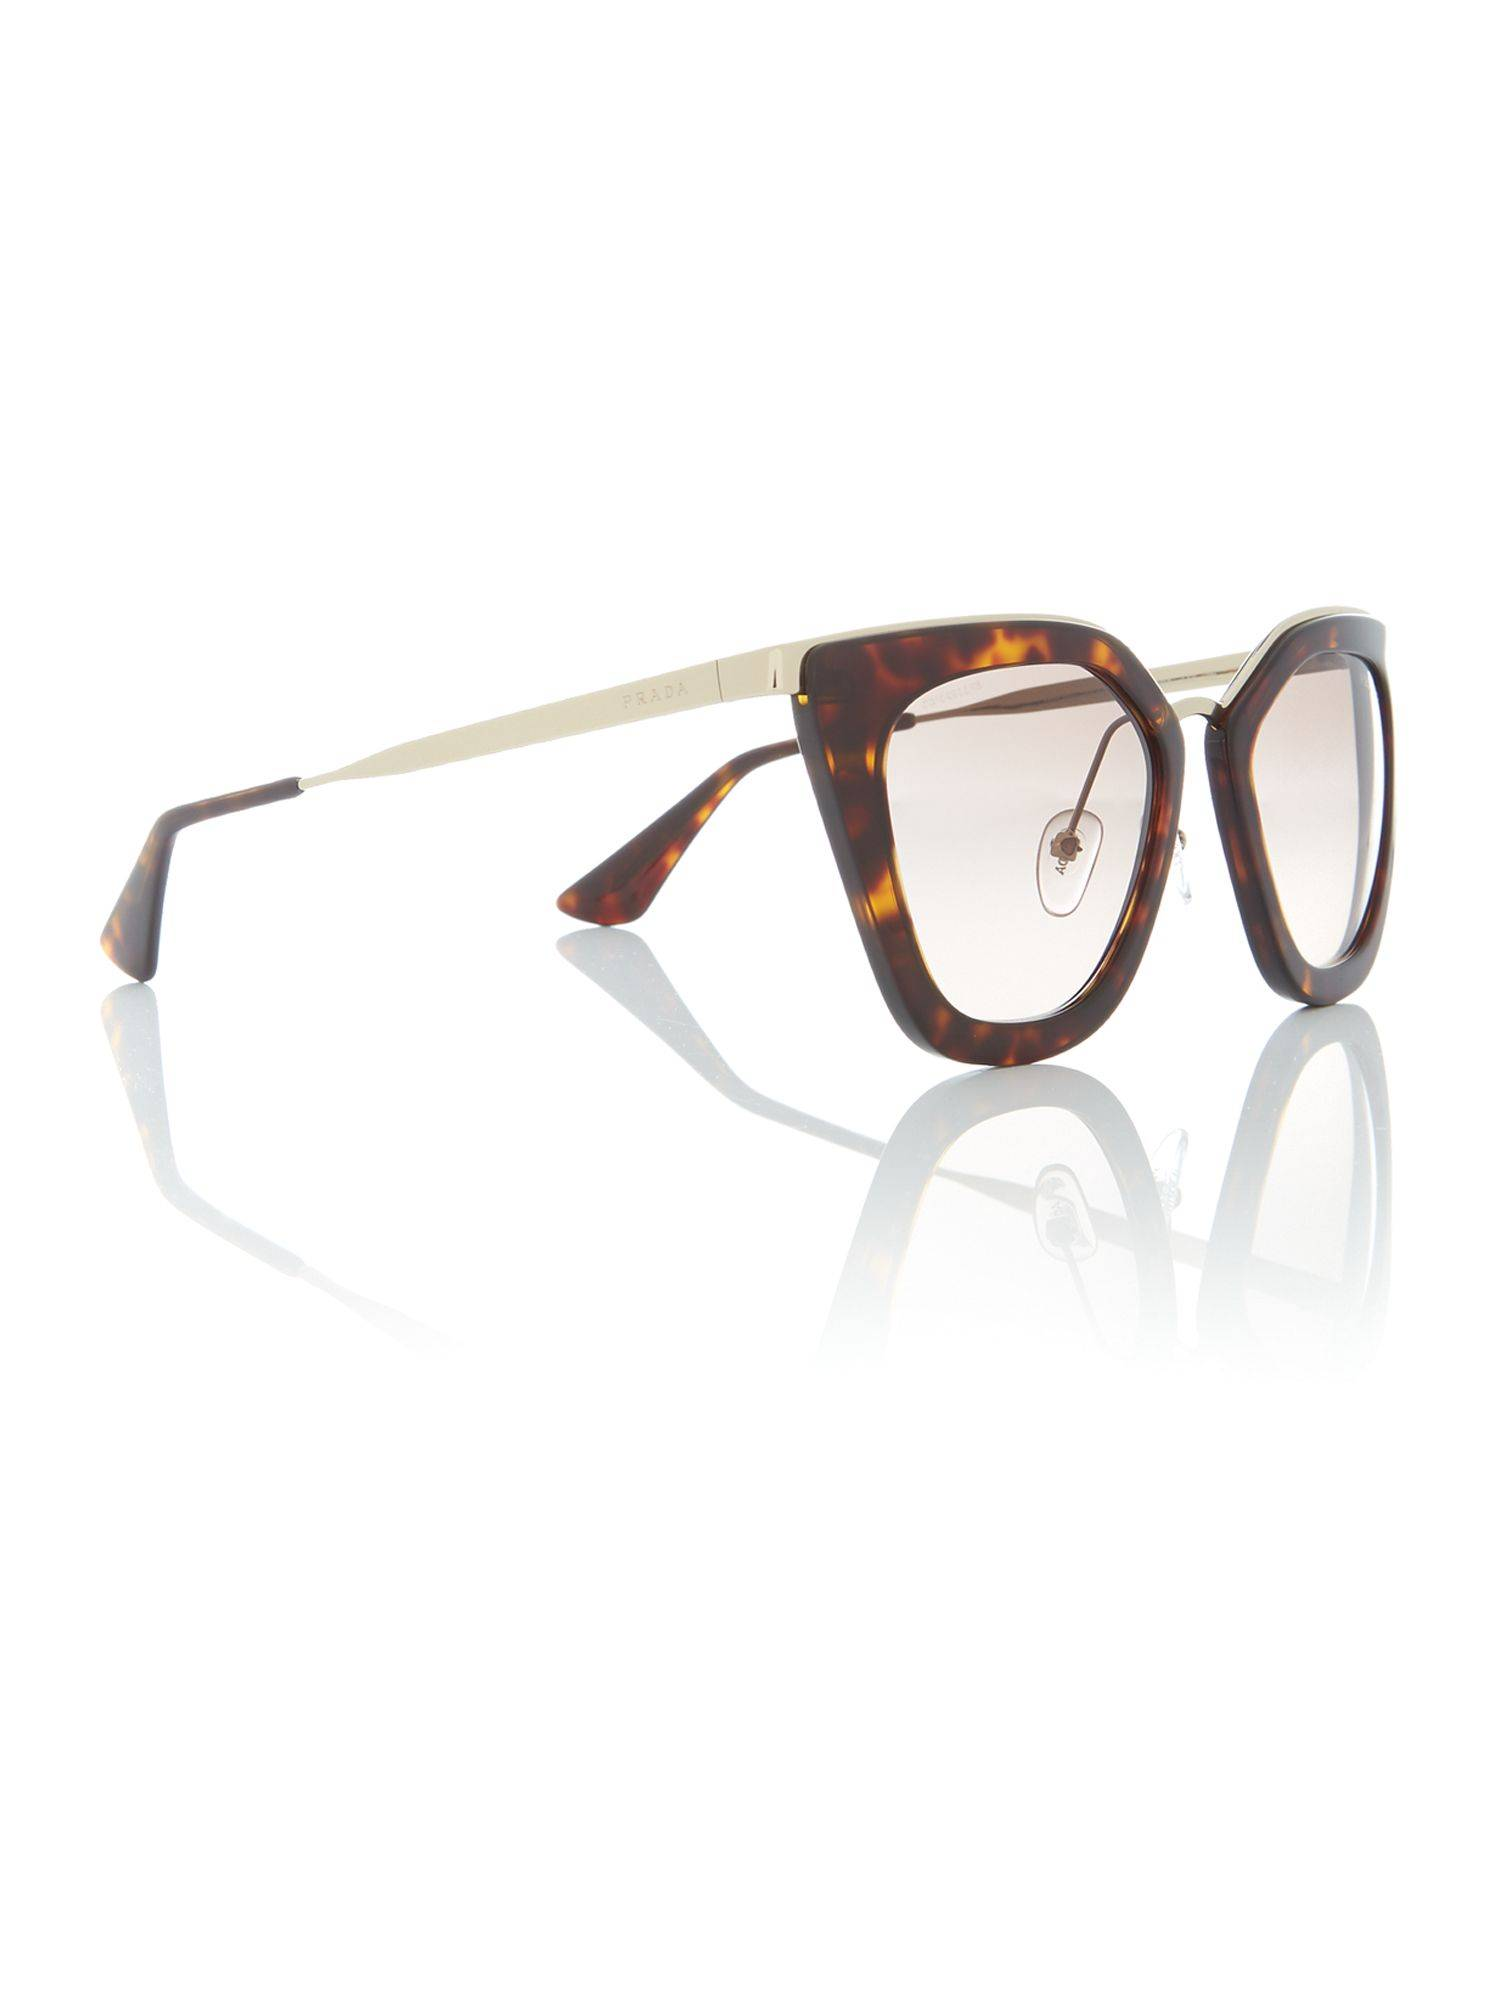 Prada Sunglasses Havana cat eye PR 53SS sunglasses